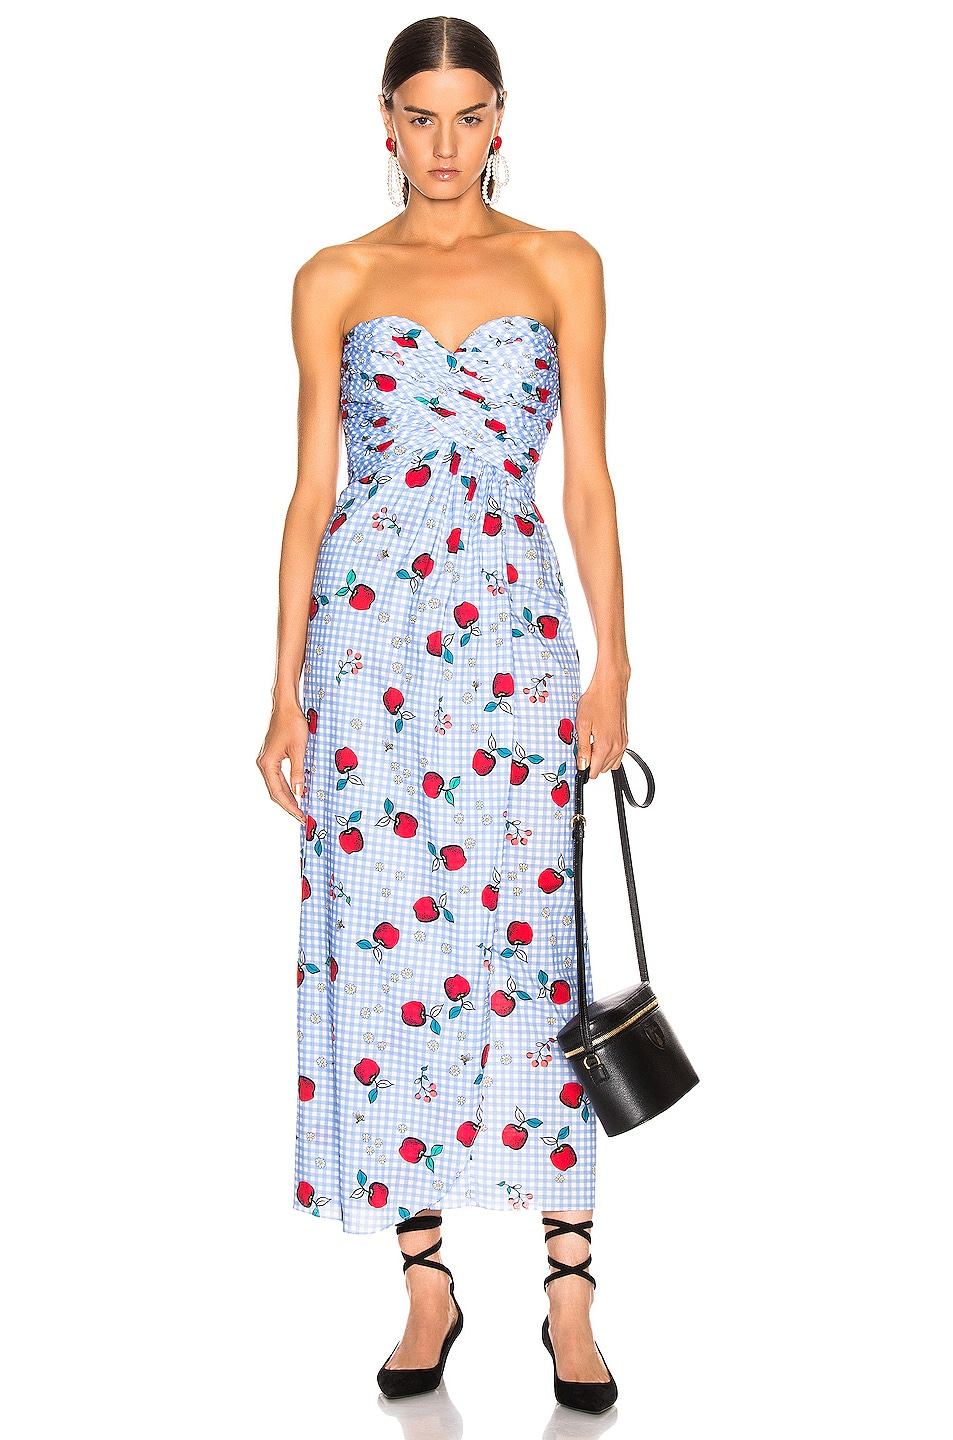 Image 1 of Rebecca De Ravenel Dandelion Strapless Dress in Flying Fruit Print